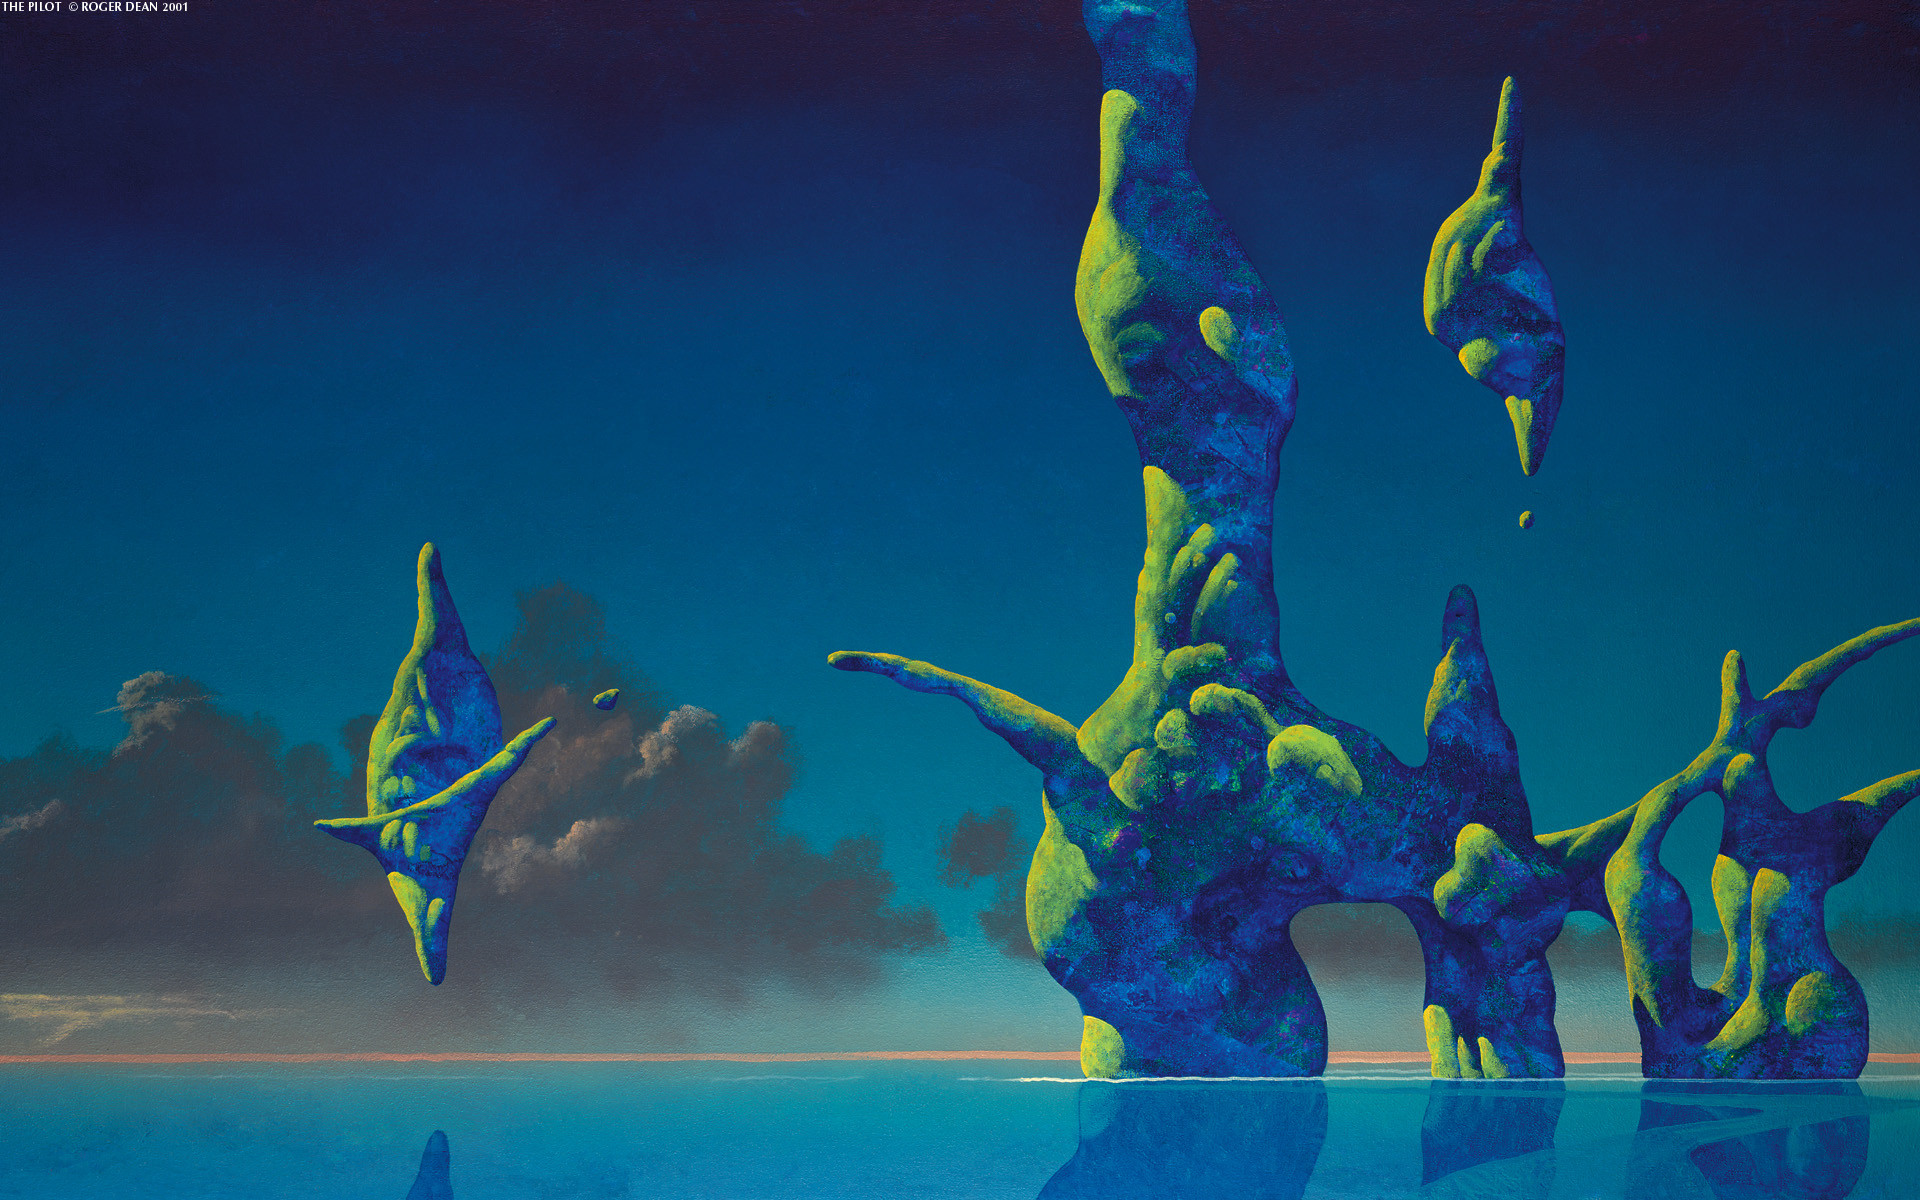 1920x1200 Roger dean science fiction wallpaper  13108 WallpaperUP